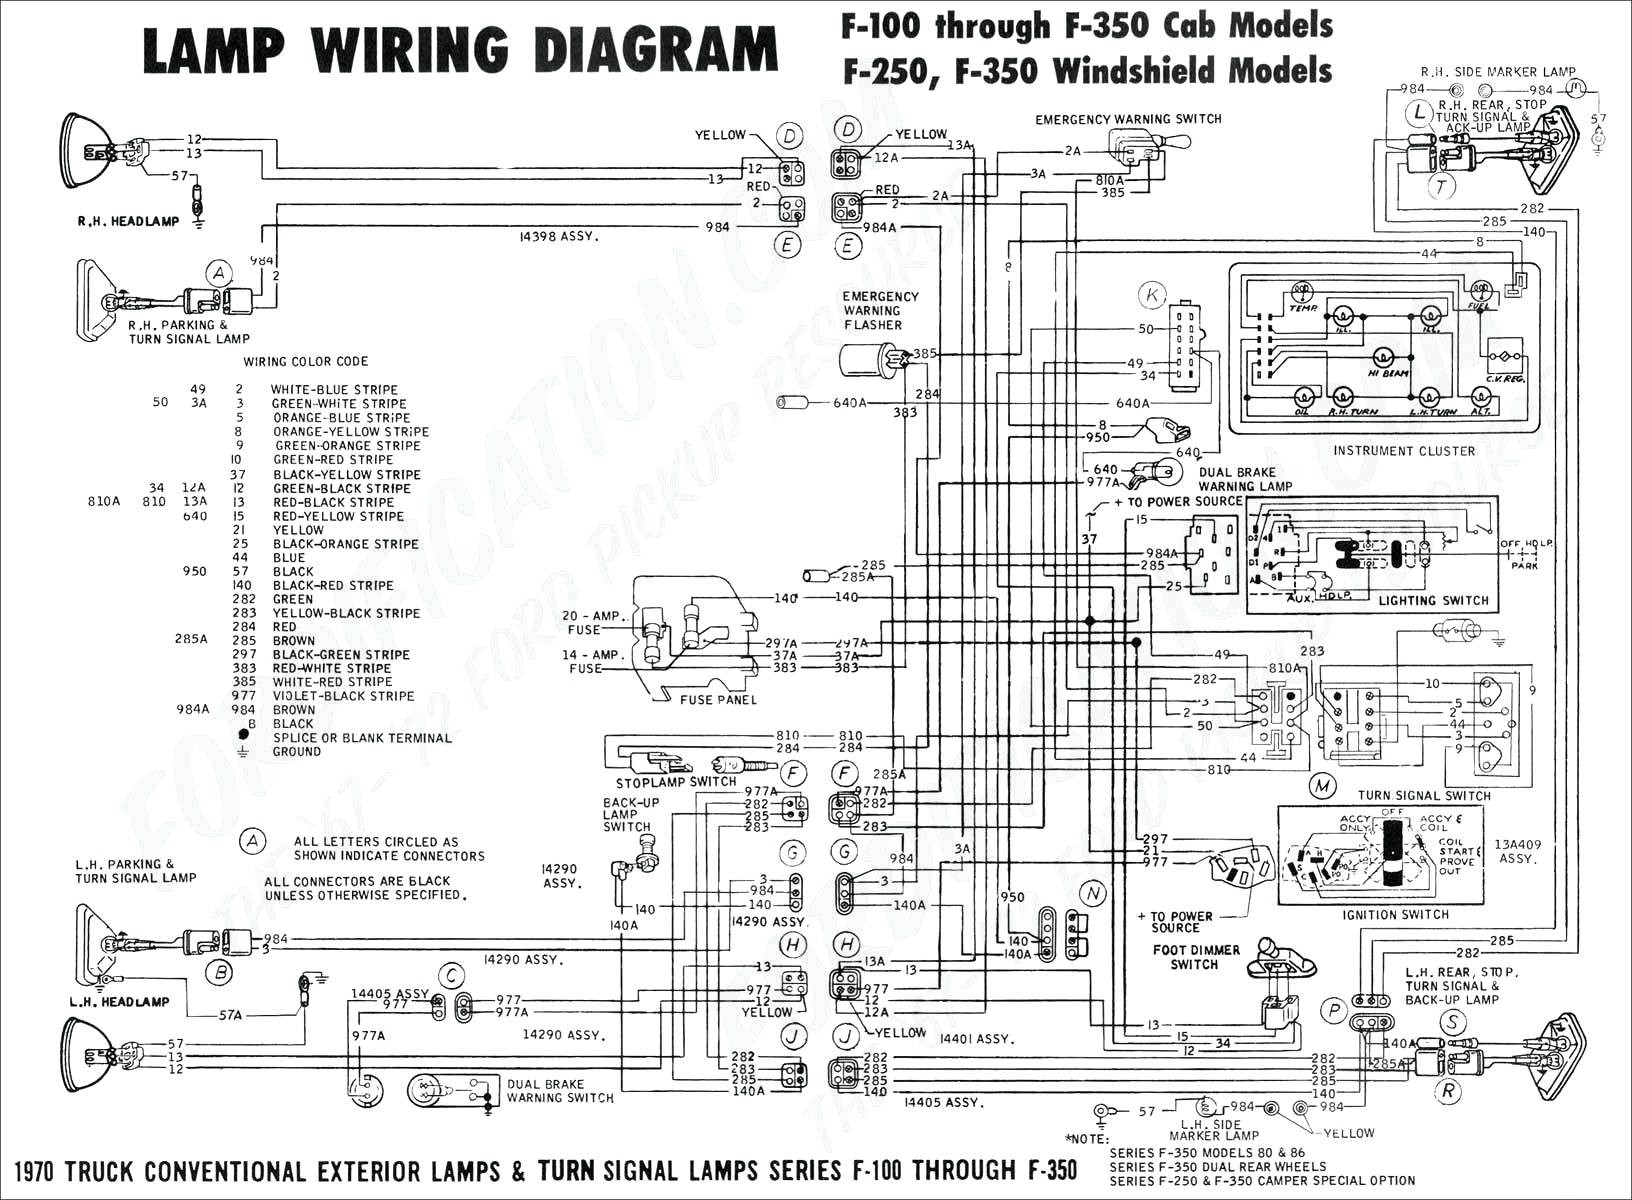 mei bill acceptor wiring diagram Download-Ford F350 Trailer Wiring Diagram Trailer Wiring Diagram ford Ranger Inspirationa 2000 ford F250 Trailer 4-t